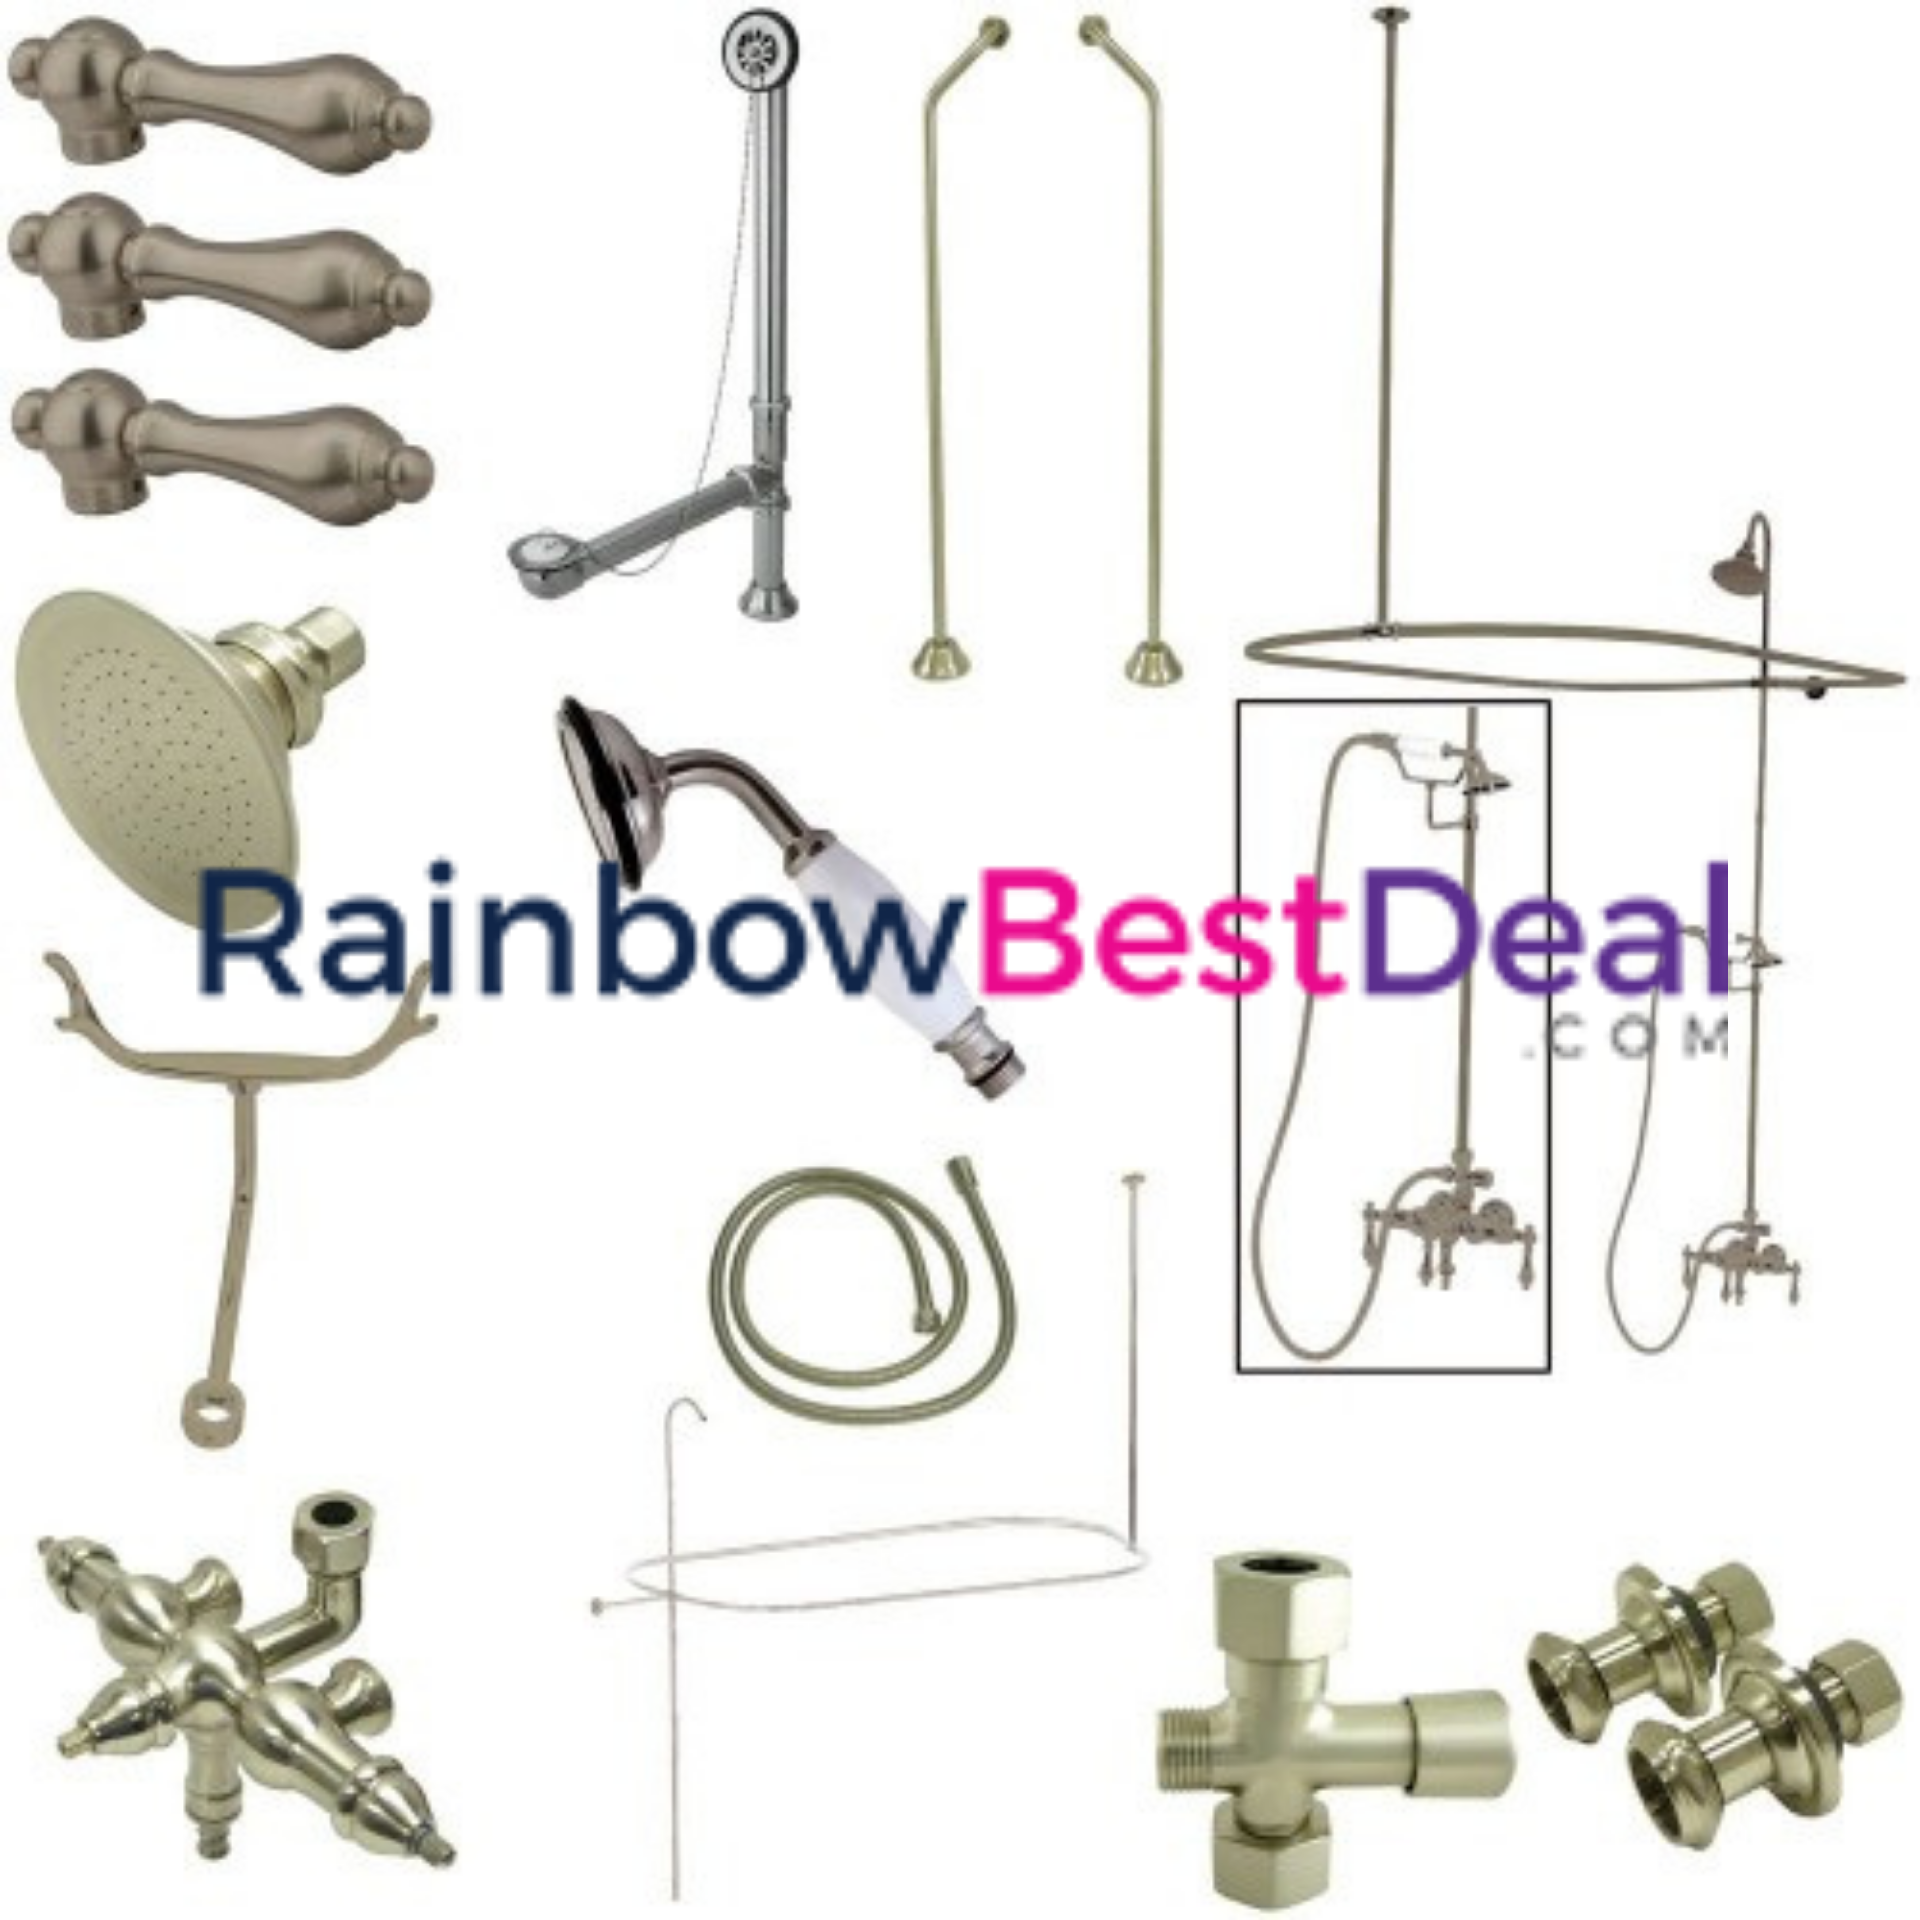 Check Out Our Wonderful Collection Of Amazing Faucets For Your